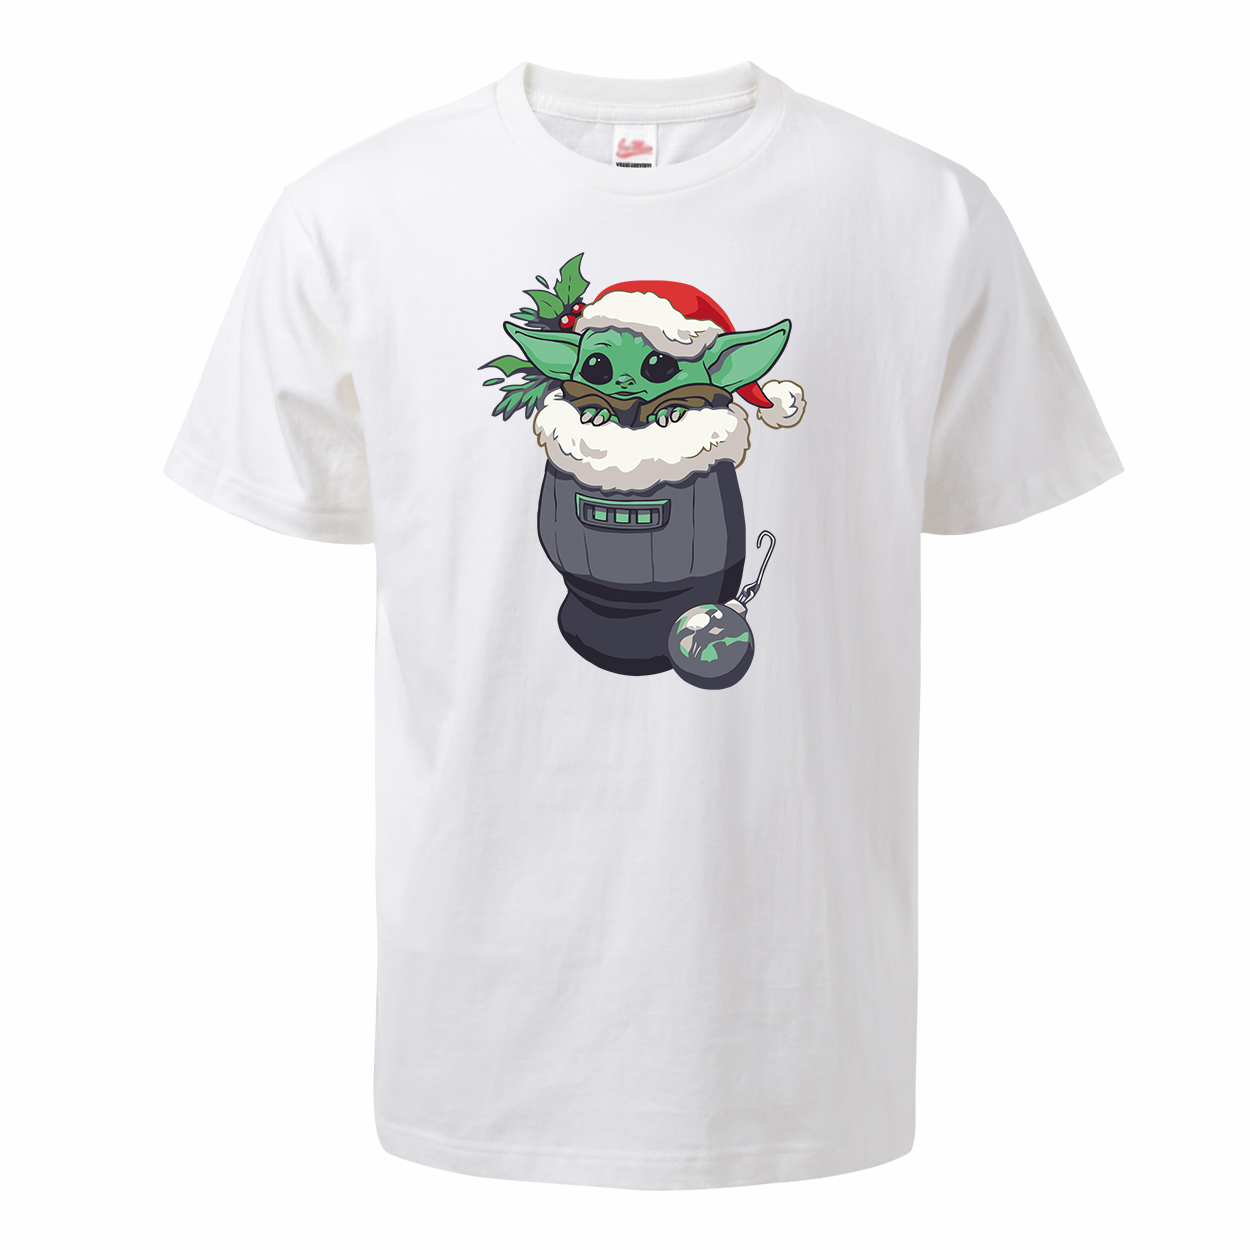 Baby Yoda The Mandalorian Men's Summer <font><b>Tshirt</b></font> 100% Cotton Round Neck Cute Yoda T-shirt <font><b>Christmas</b></font> Tops Tees <font><b>Star</b></font> <font><b>Wars</b></font> Streetwear image